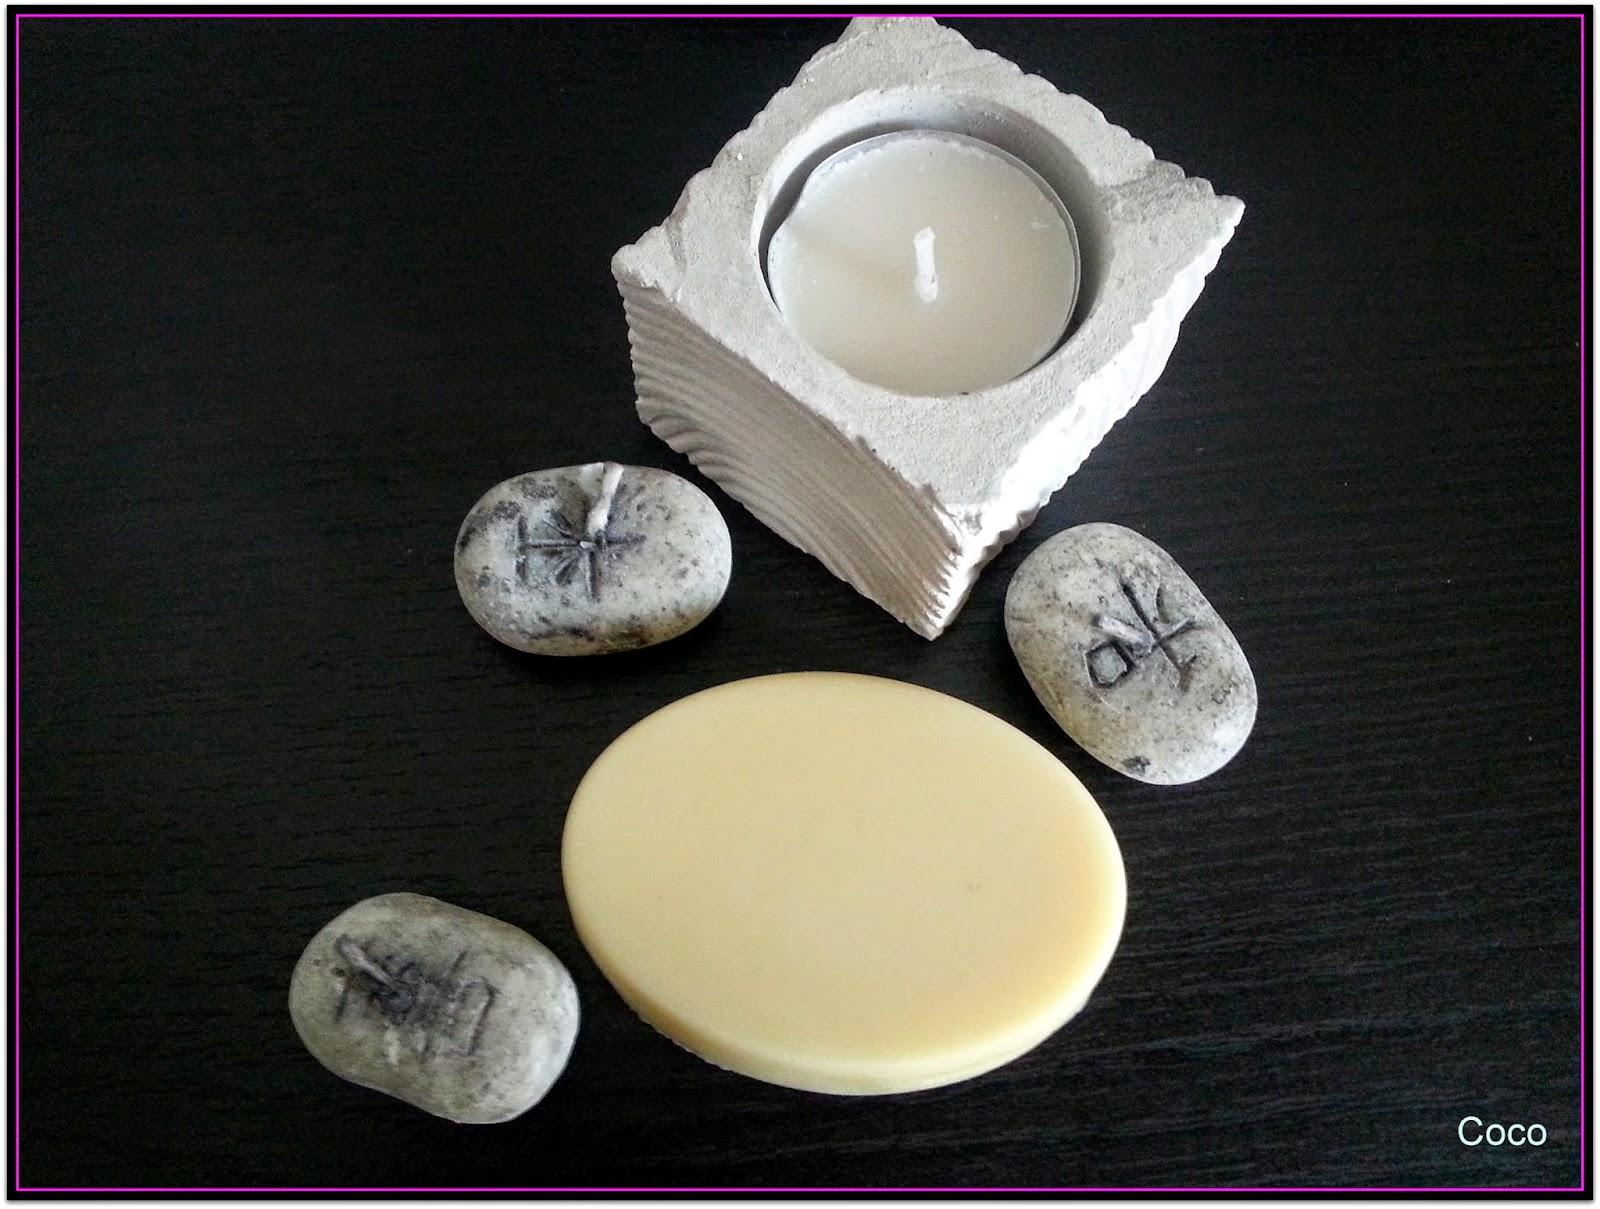 Barre de massage coco/ylang